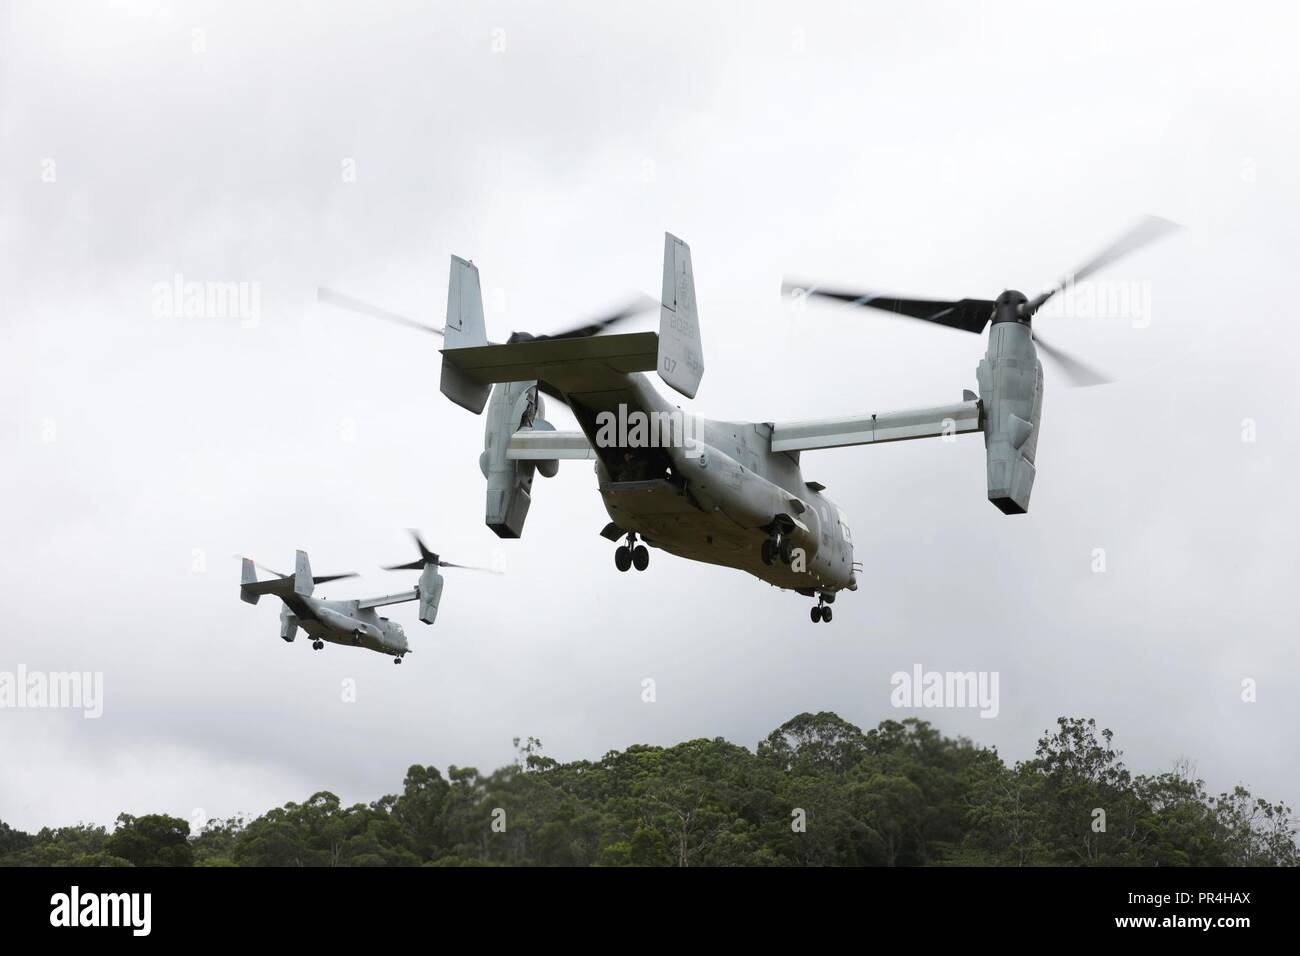 MV-22 Osprey aircraft assigned to Marine Medium Tiltrotor Squadron 363 (VMM-363), takeoff during a confined area landing exercise on near the Kahuku Training Area, Sept. 13, 2018. The training provided an opportunity for pilots and crew chiefs to improve their proficiency and experience in flying around a tropical environment. Stock Photo